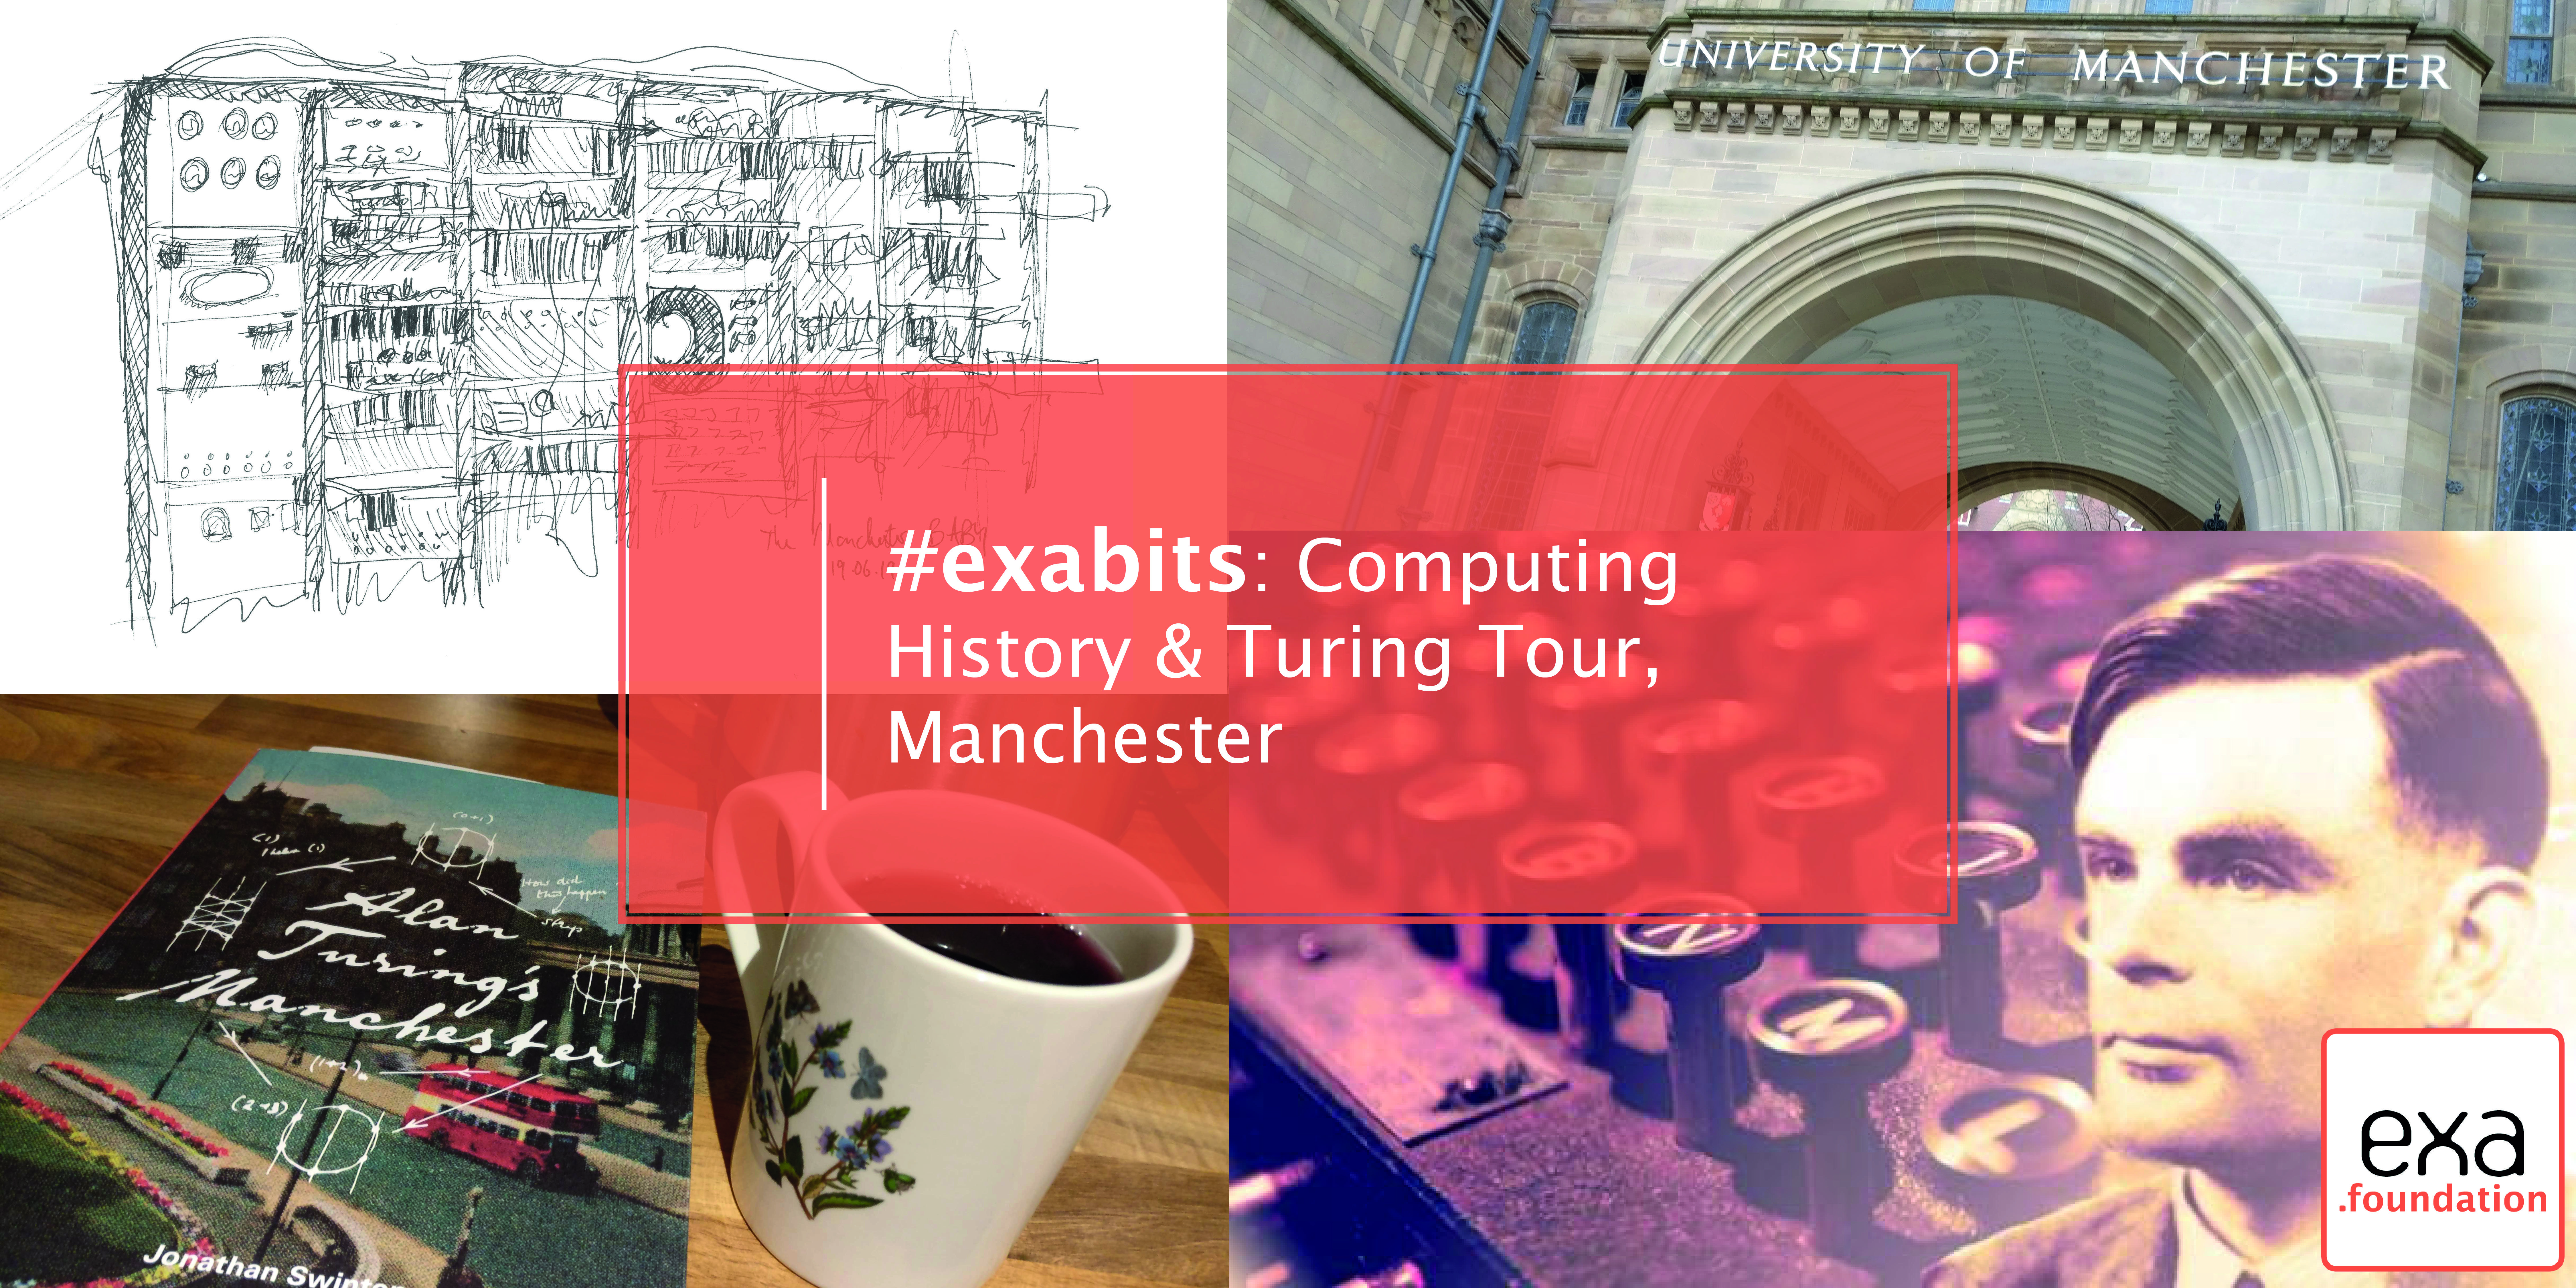 #exabits: Computing History & Turing Tour, Manchester 17Apr20